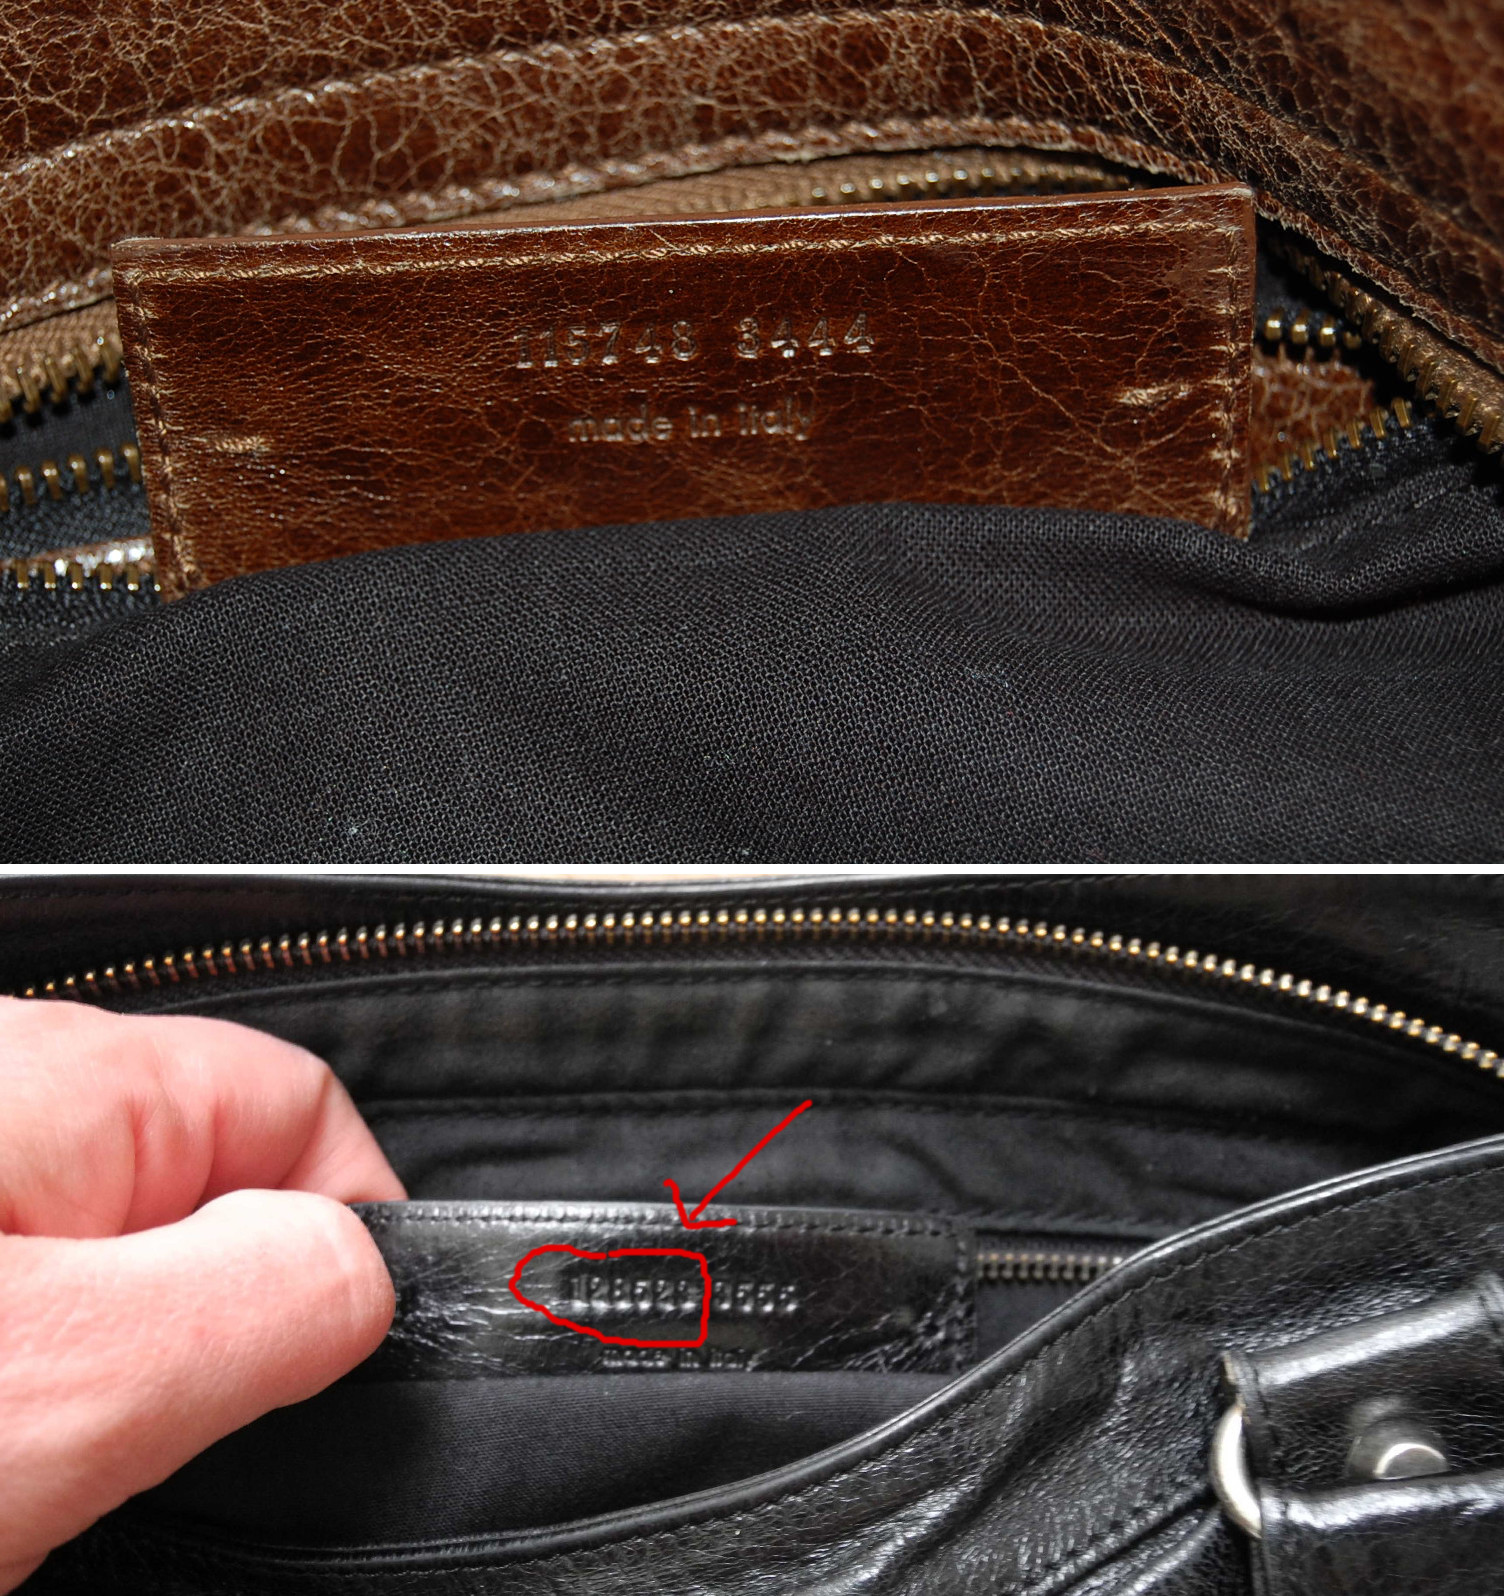 e57146719aa577 How to Authenticate Balenciaga Bags | Lollipuff